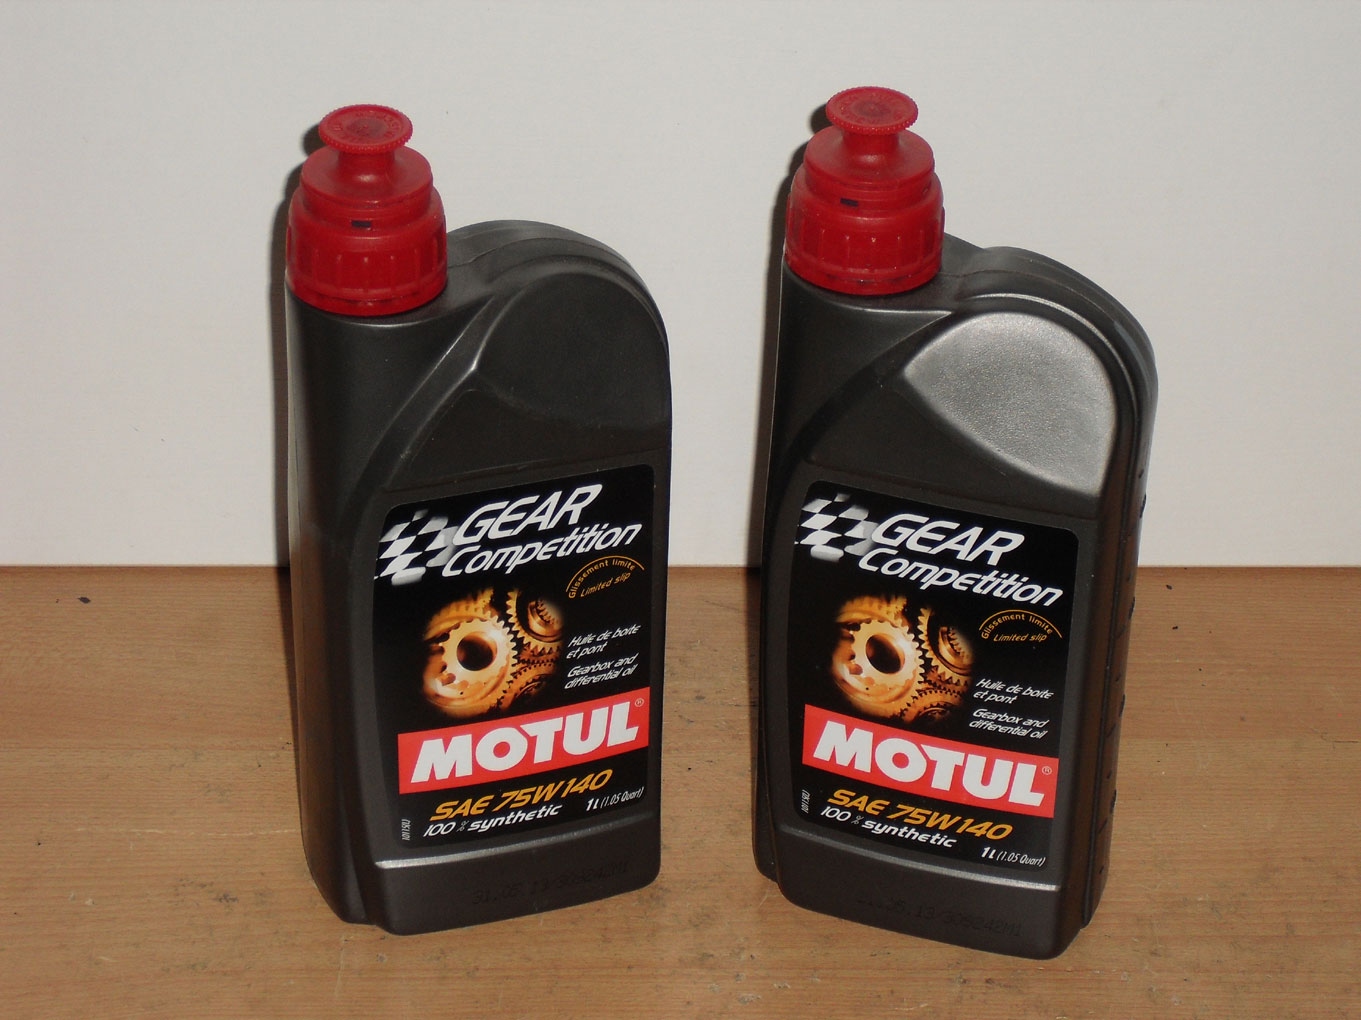 2x1Ltr  Motul Gear Competition SAE 75W-140 Racing gearbox oil BMW Motorsport